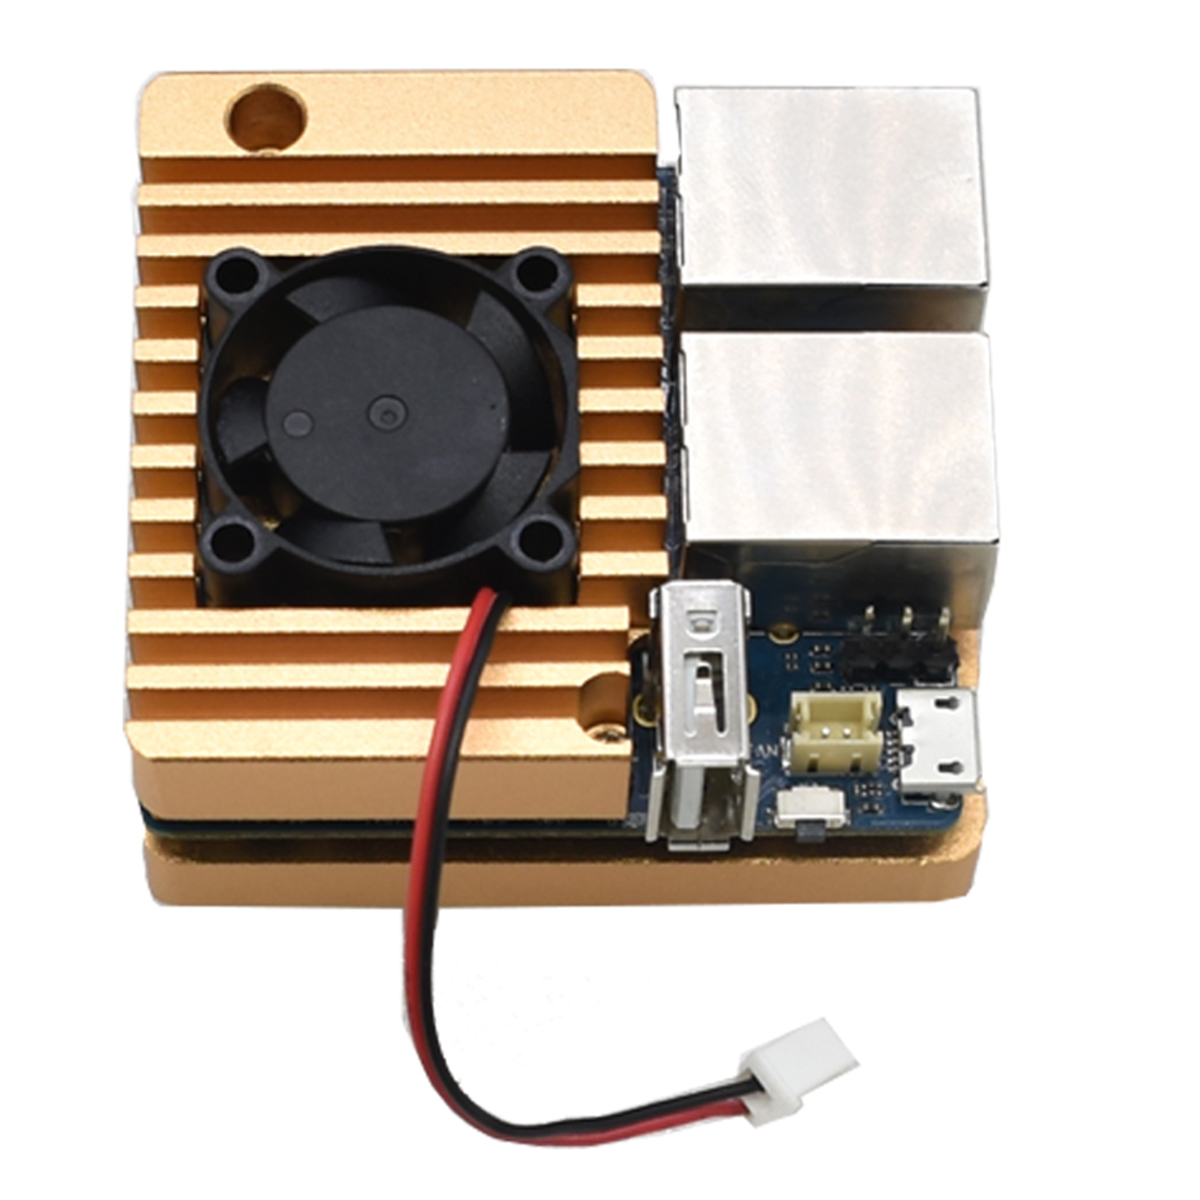 High Quality Aluminum Alloy Shell Case With Fan For NanoPi R2S